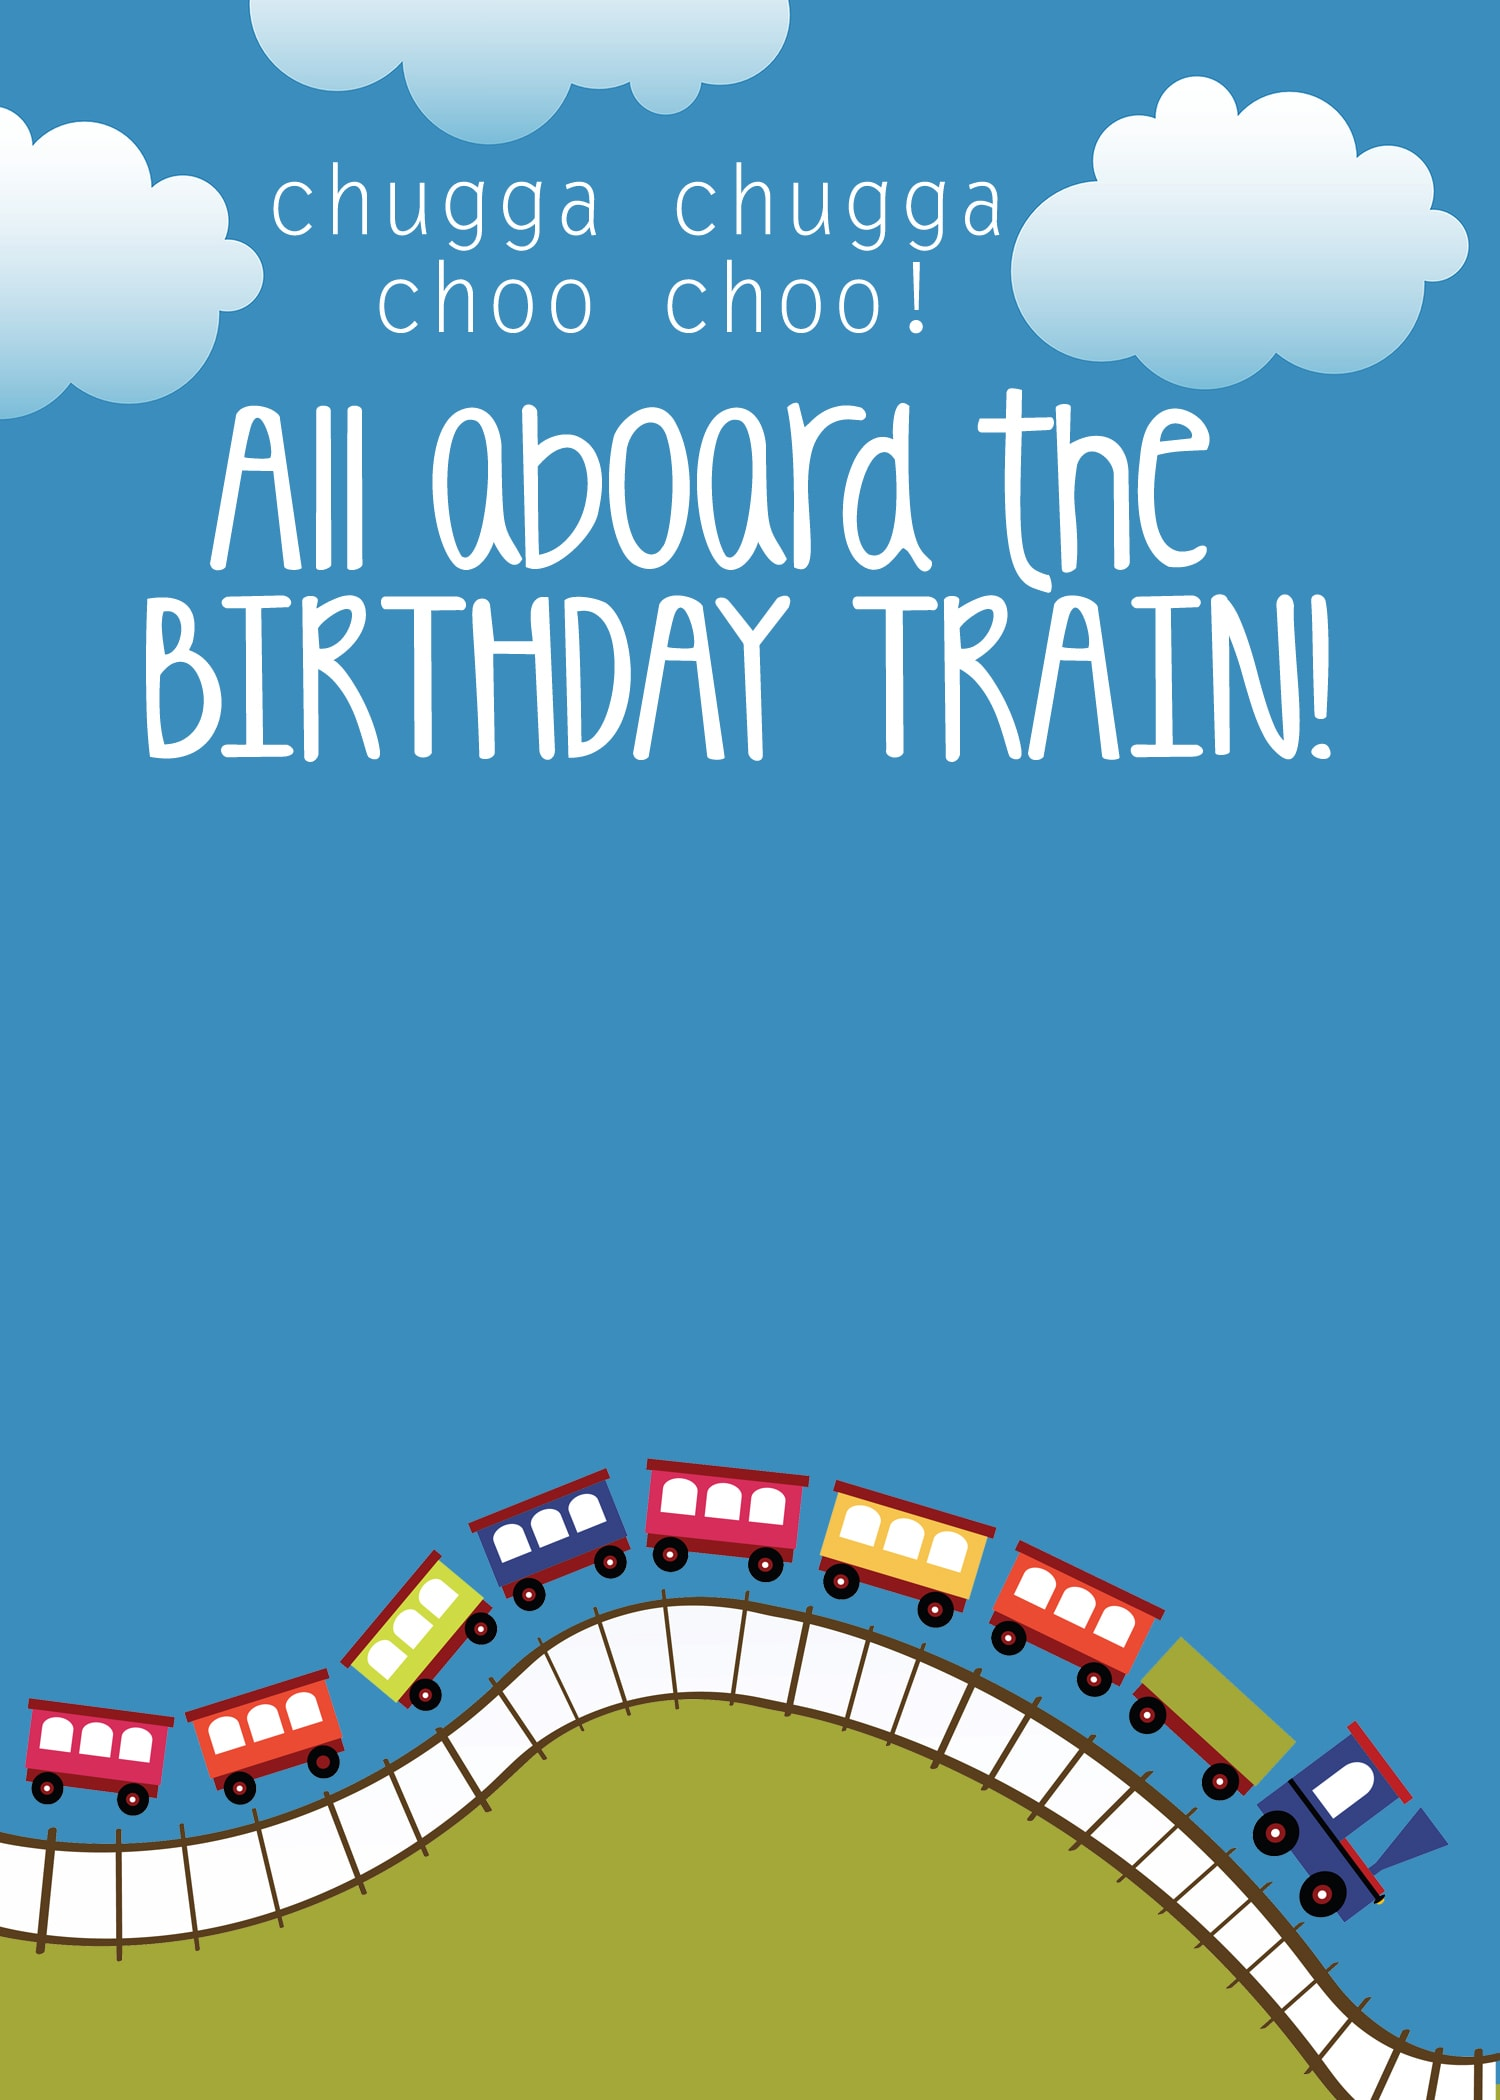 Howtonestforless Wp Content Uploads 2014 03 Train Birthday Party Invitation Template